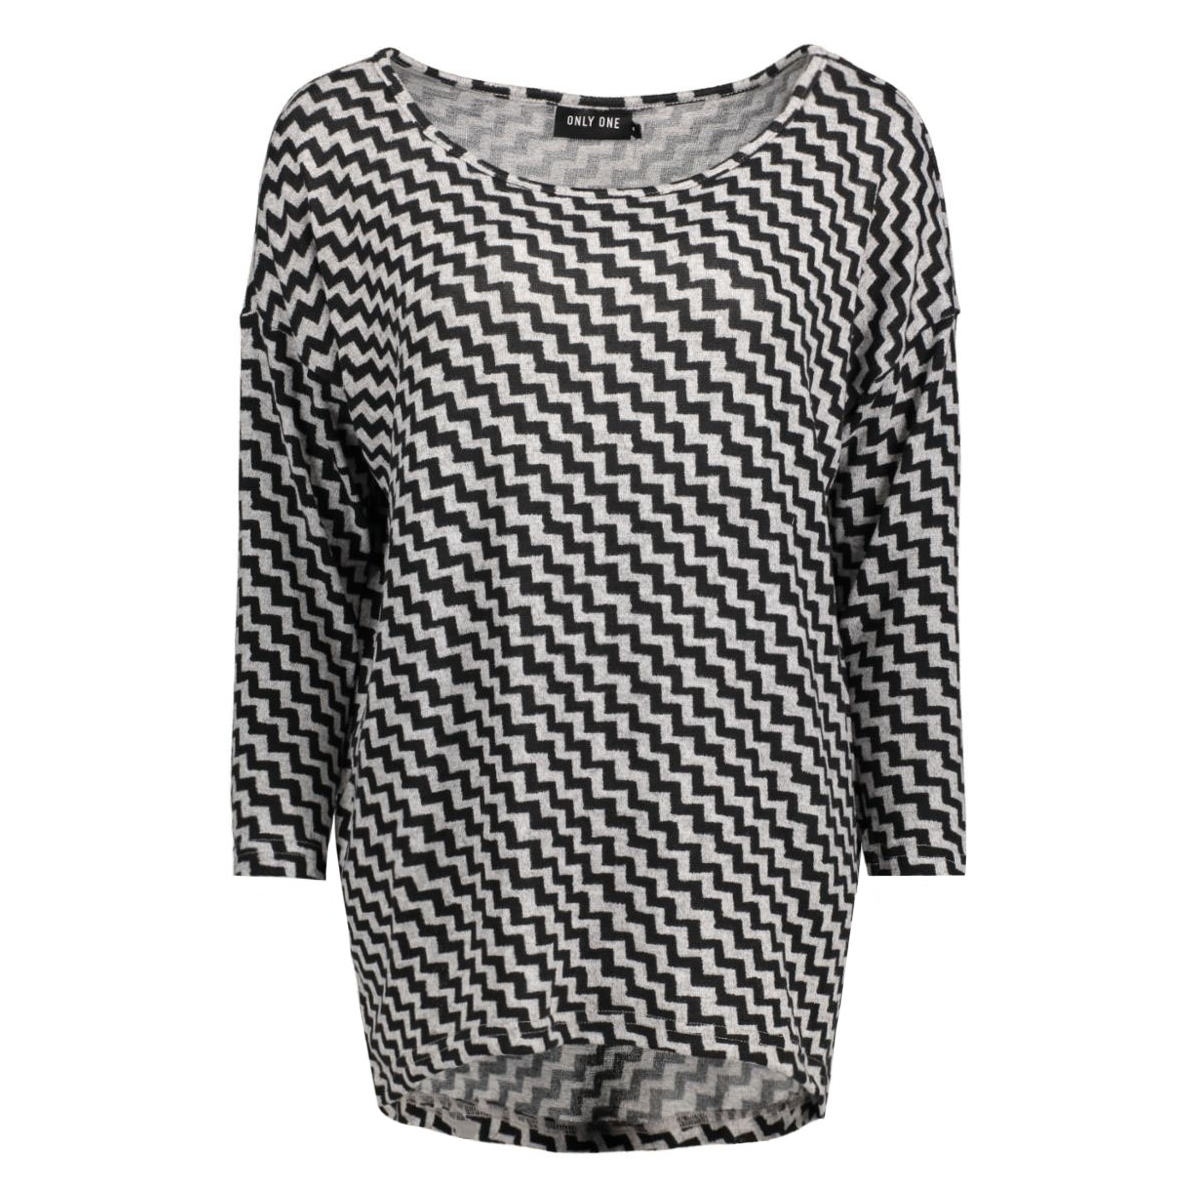 onlelcos anne 4/5 top jrs 15133165 only t-shirt light grey/ black